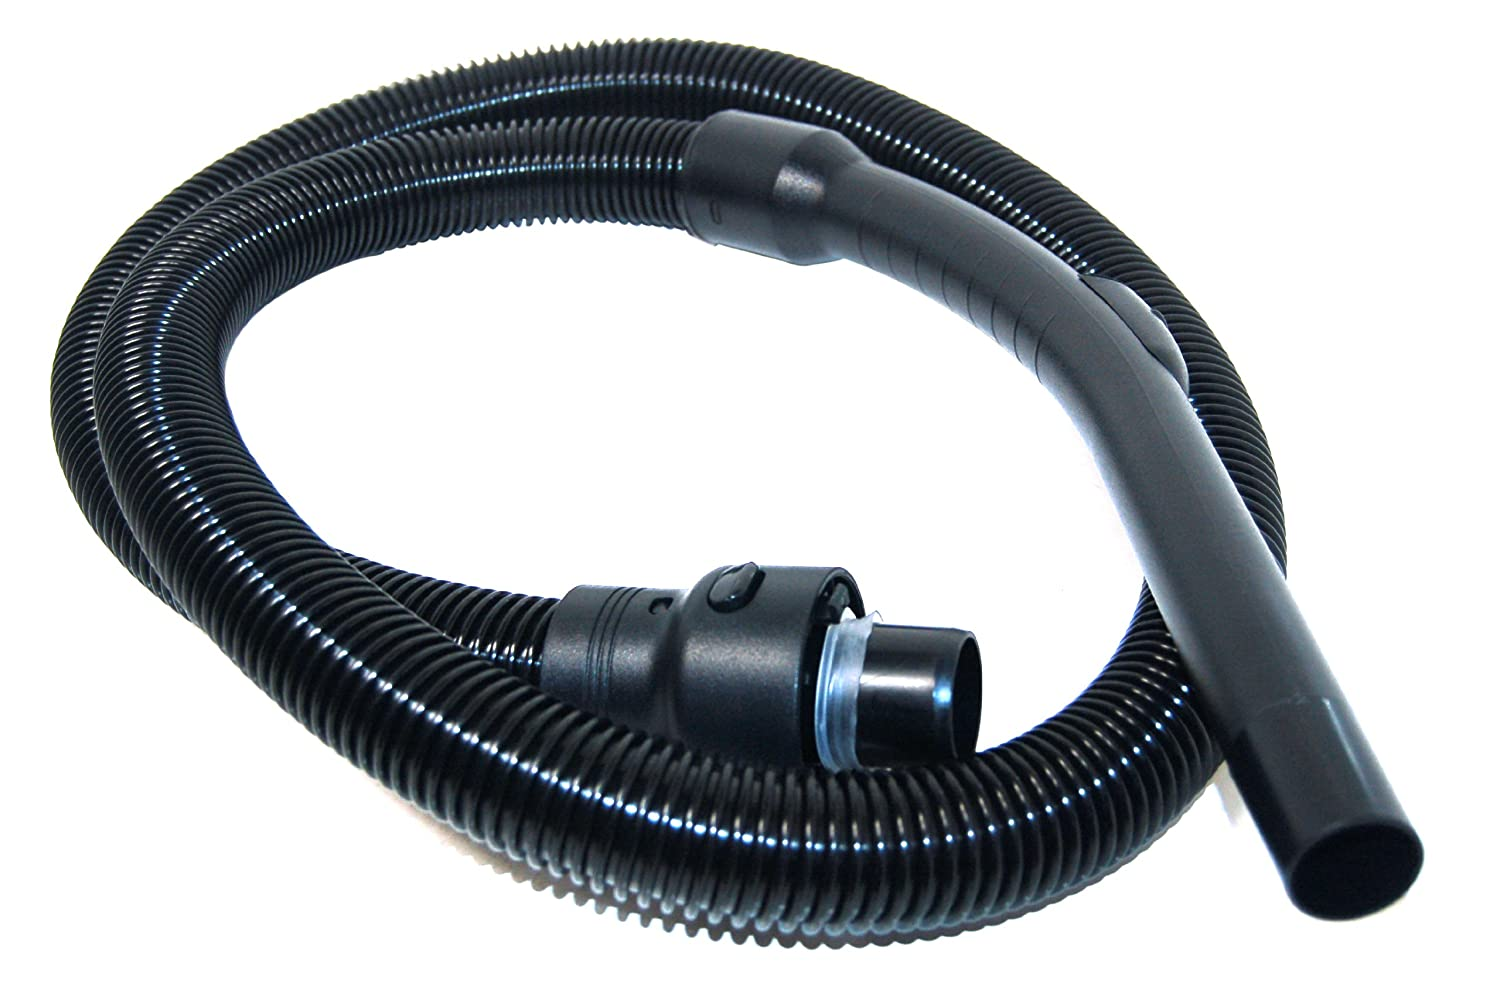 Hoover 4345142 - Tubo flexible para aspiradoras: Amazon.es: Hogar